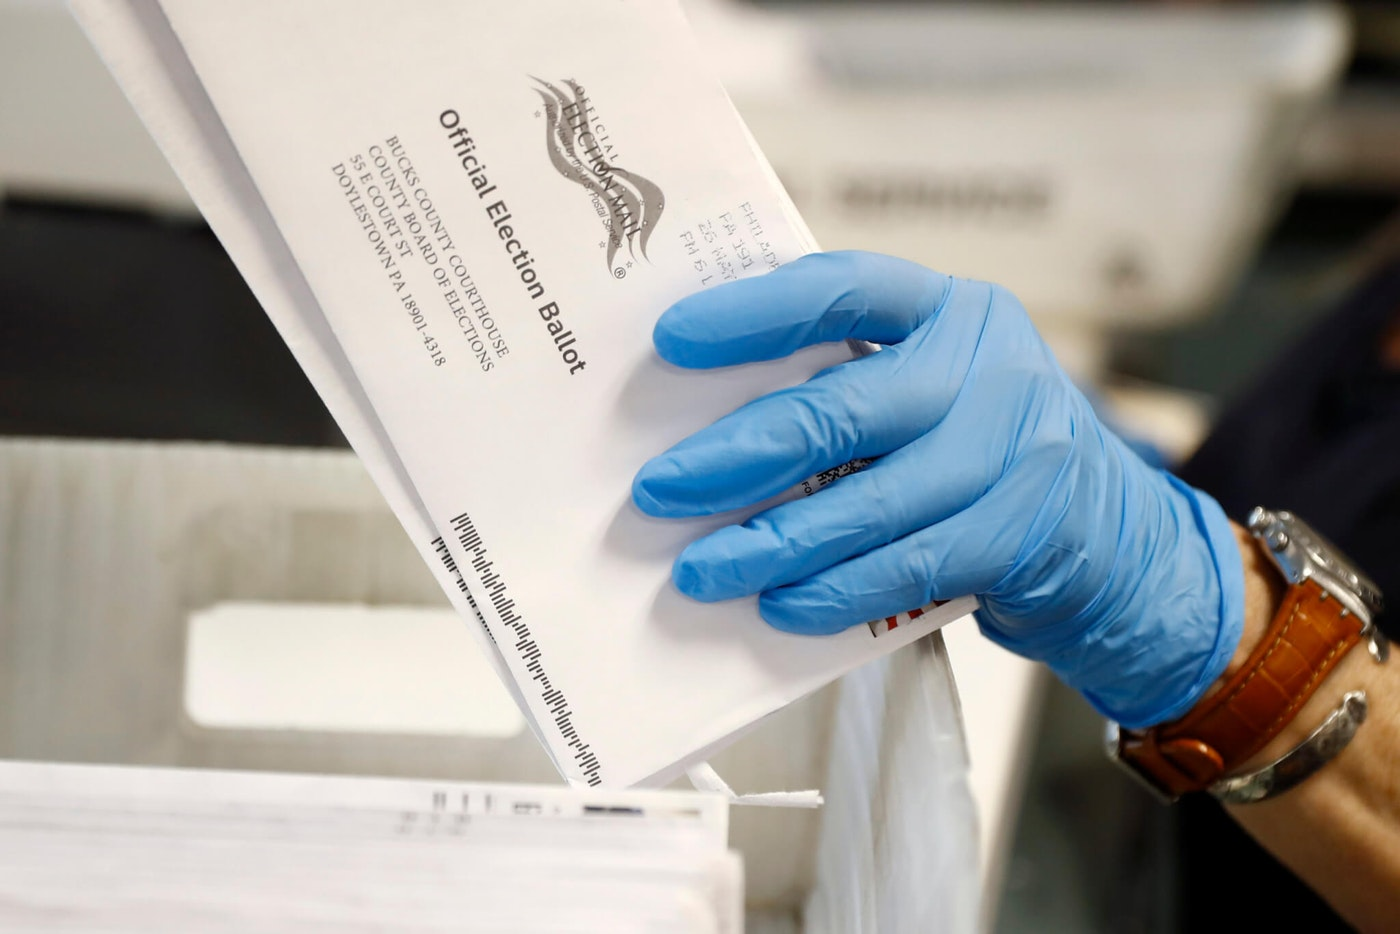 In this May 27, 2020 file photo, a worker processes mail-in ballots at the Bucks County Board of Elections office prior to the primary election in Doylestown, Pa. The counting from Pennsylvania's first foray into mass voting by mail took more than a week. (AP Photo/Matt Slocum, File)